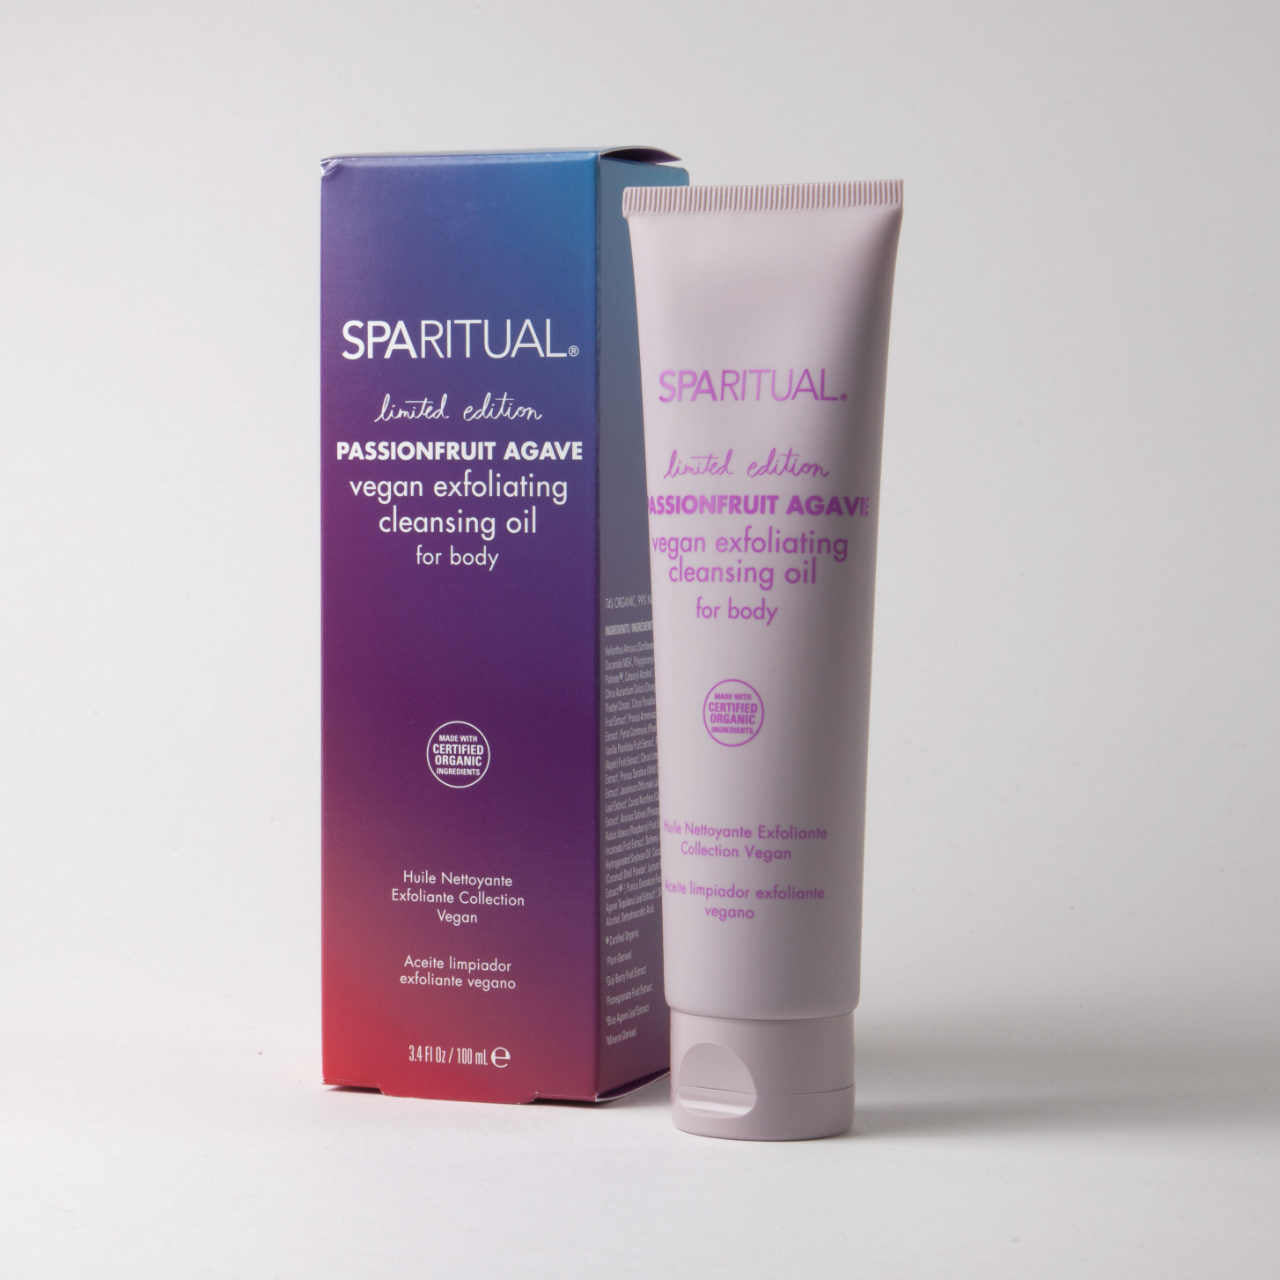 SPARITUAL Passionfruit Agave Exfoliating Cleansing Oil